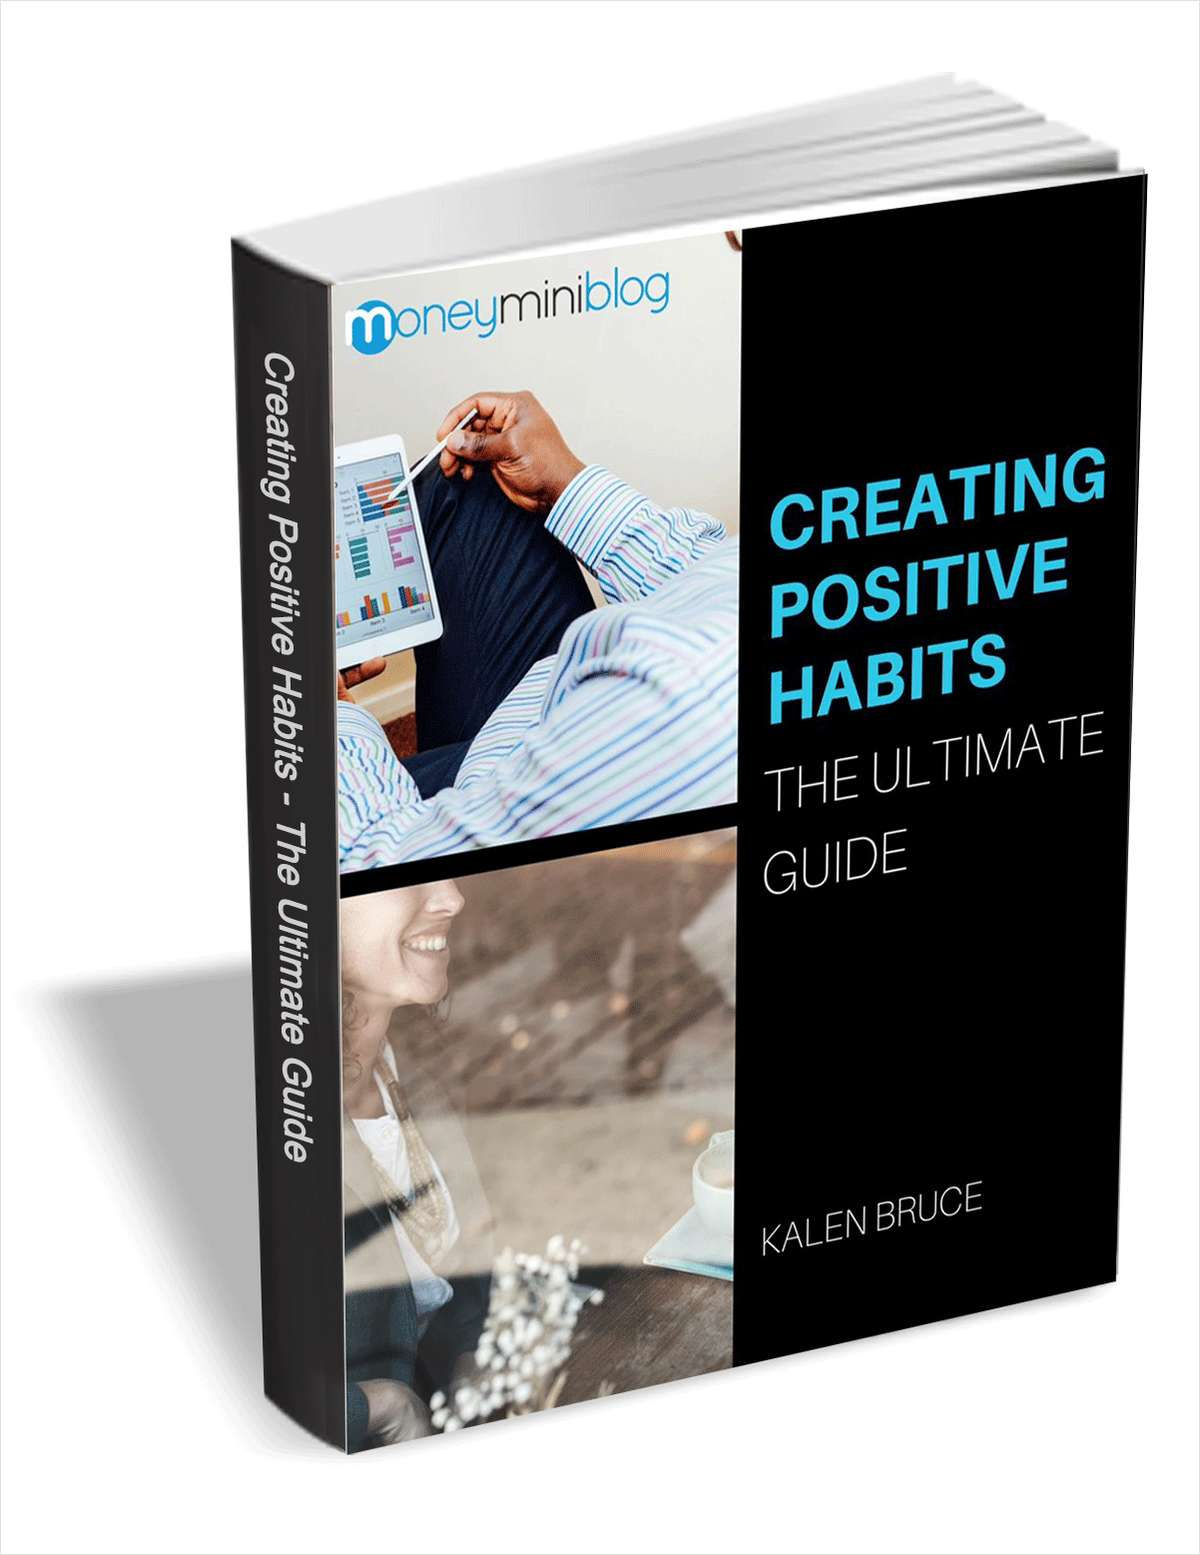 Creating Positive Habits - The Ultimate Guide